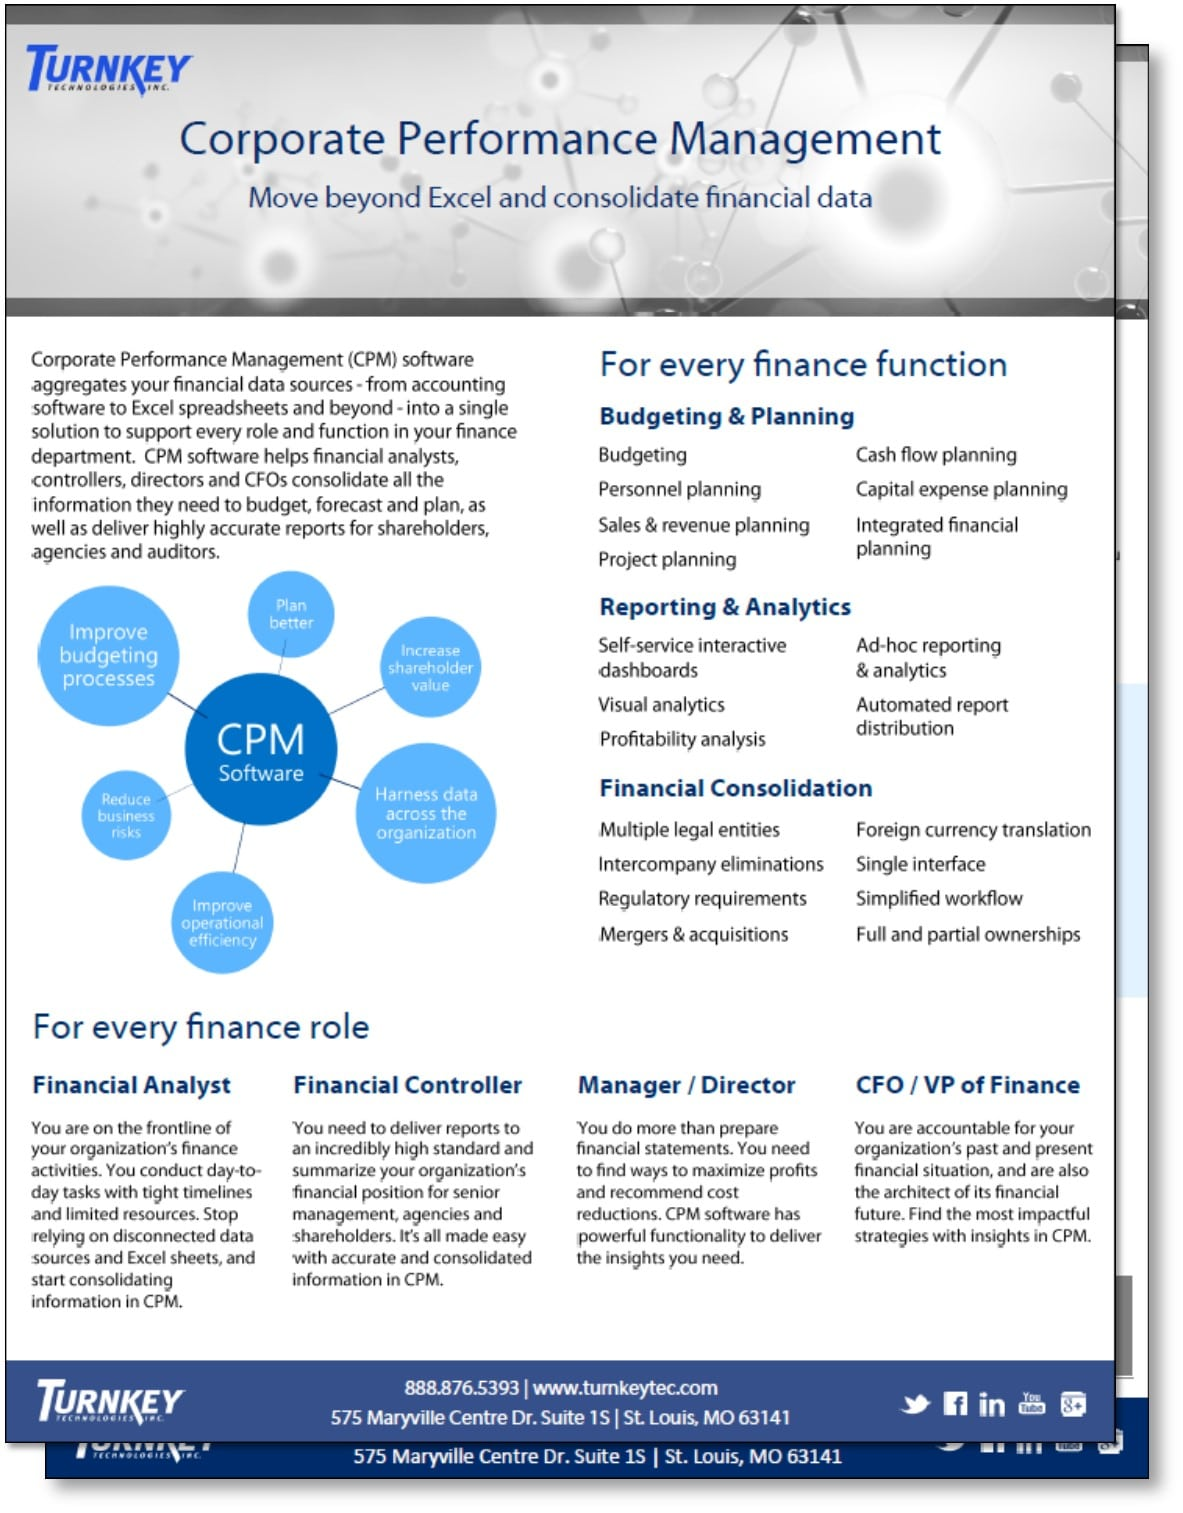 Corporate Performance Management Fact Sheet - Turnkey Technologies - image